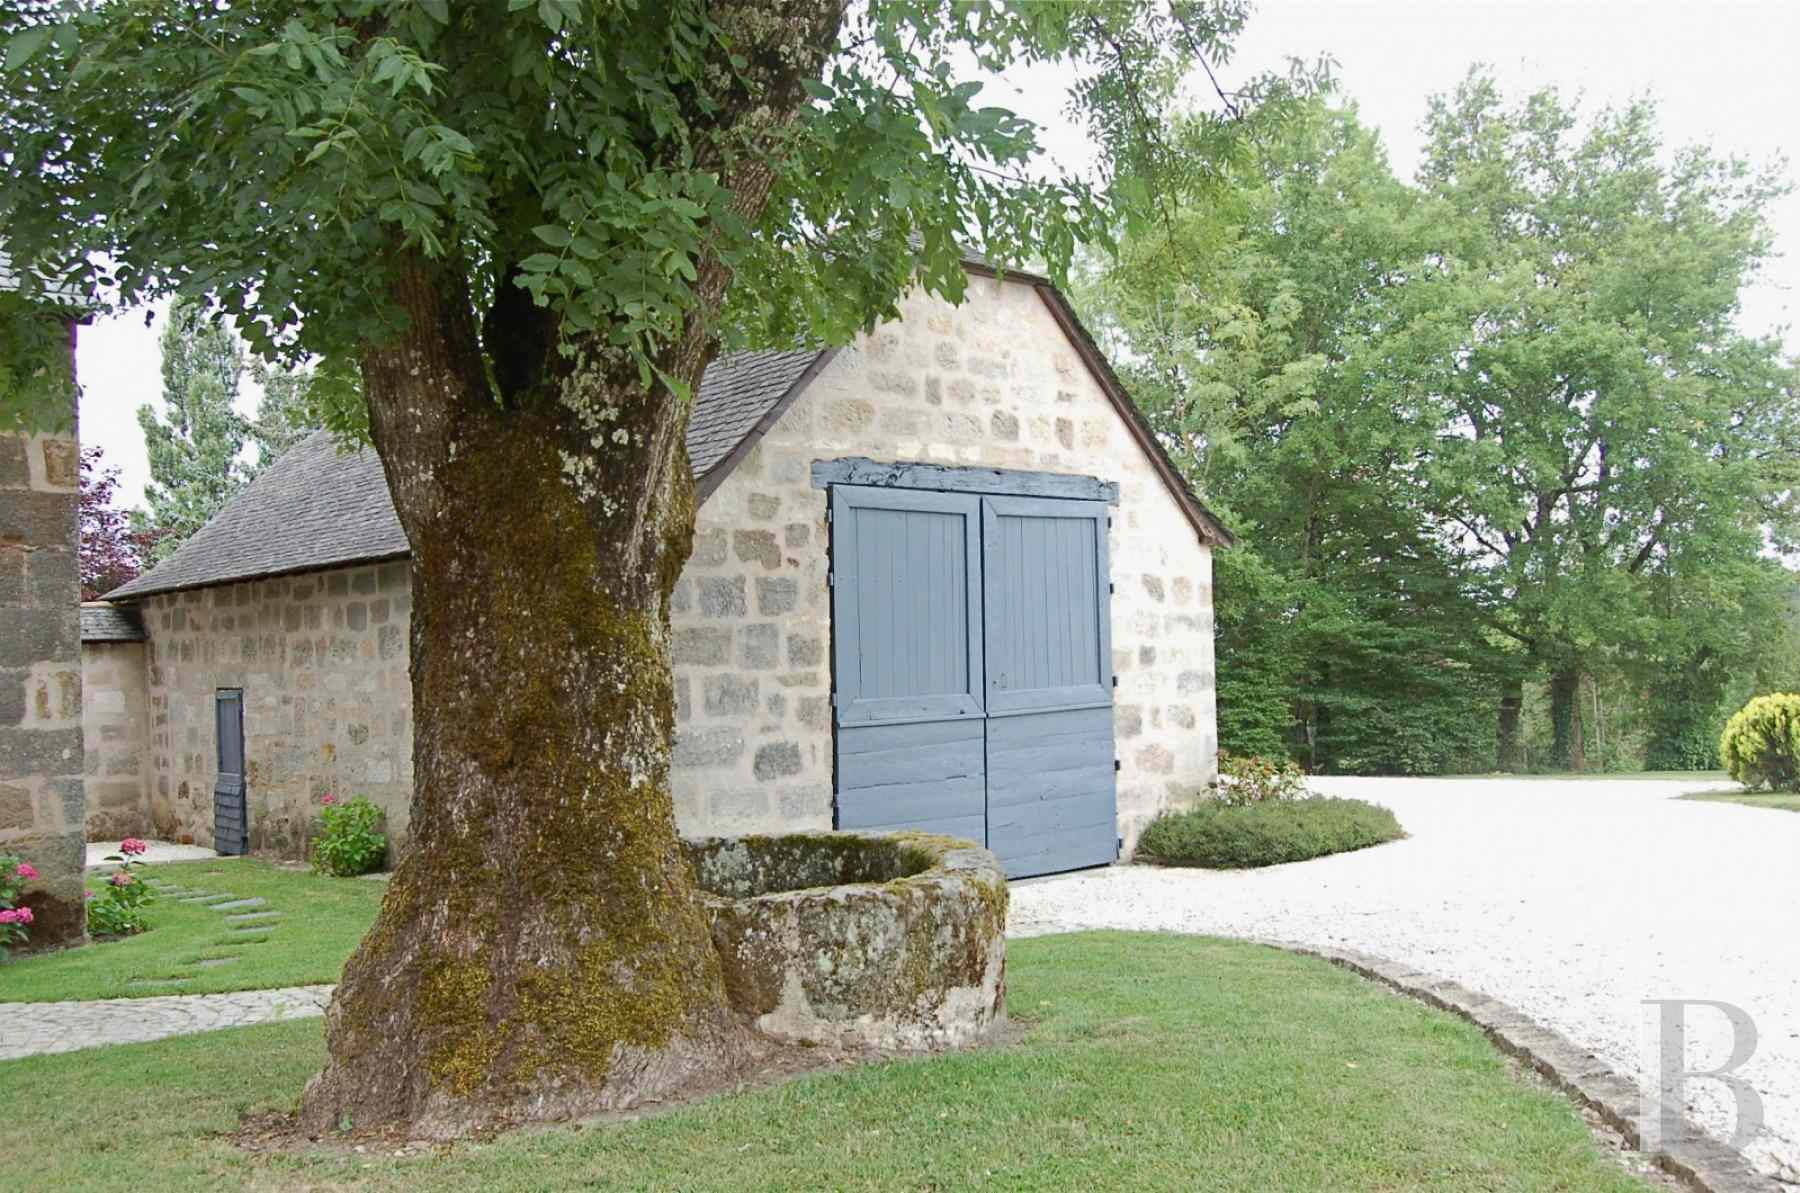 property for sale France limousin perigord quercy - 8 zoom